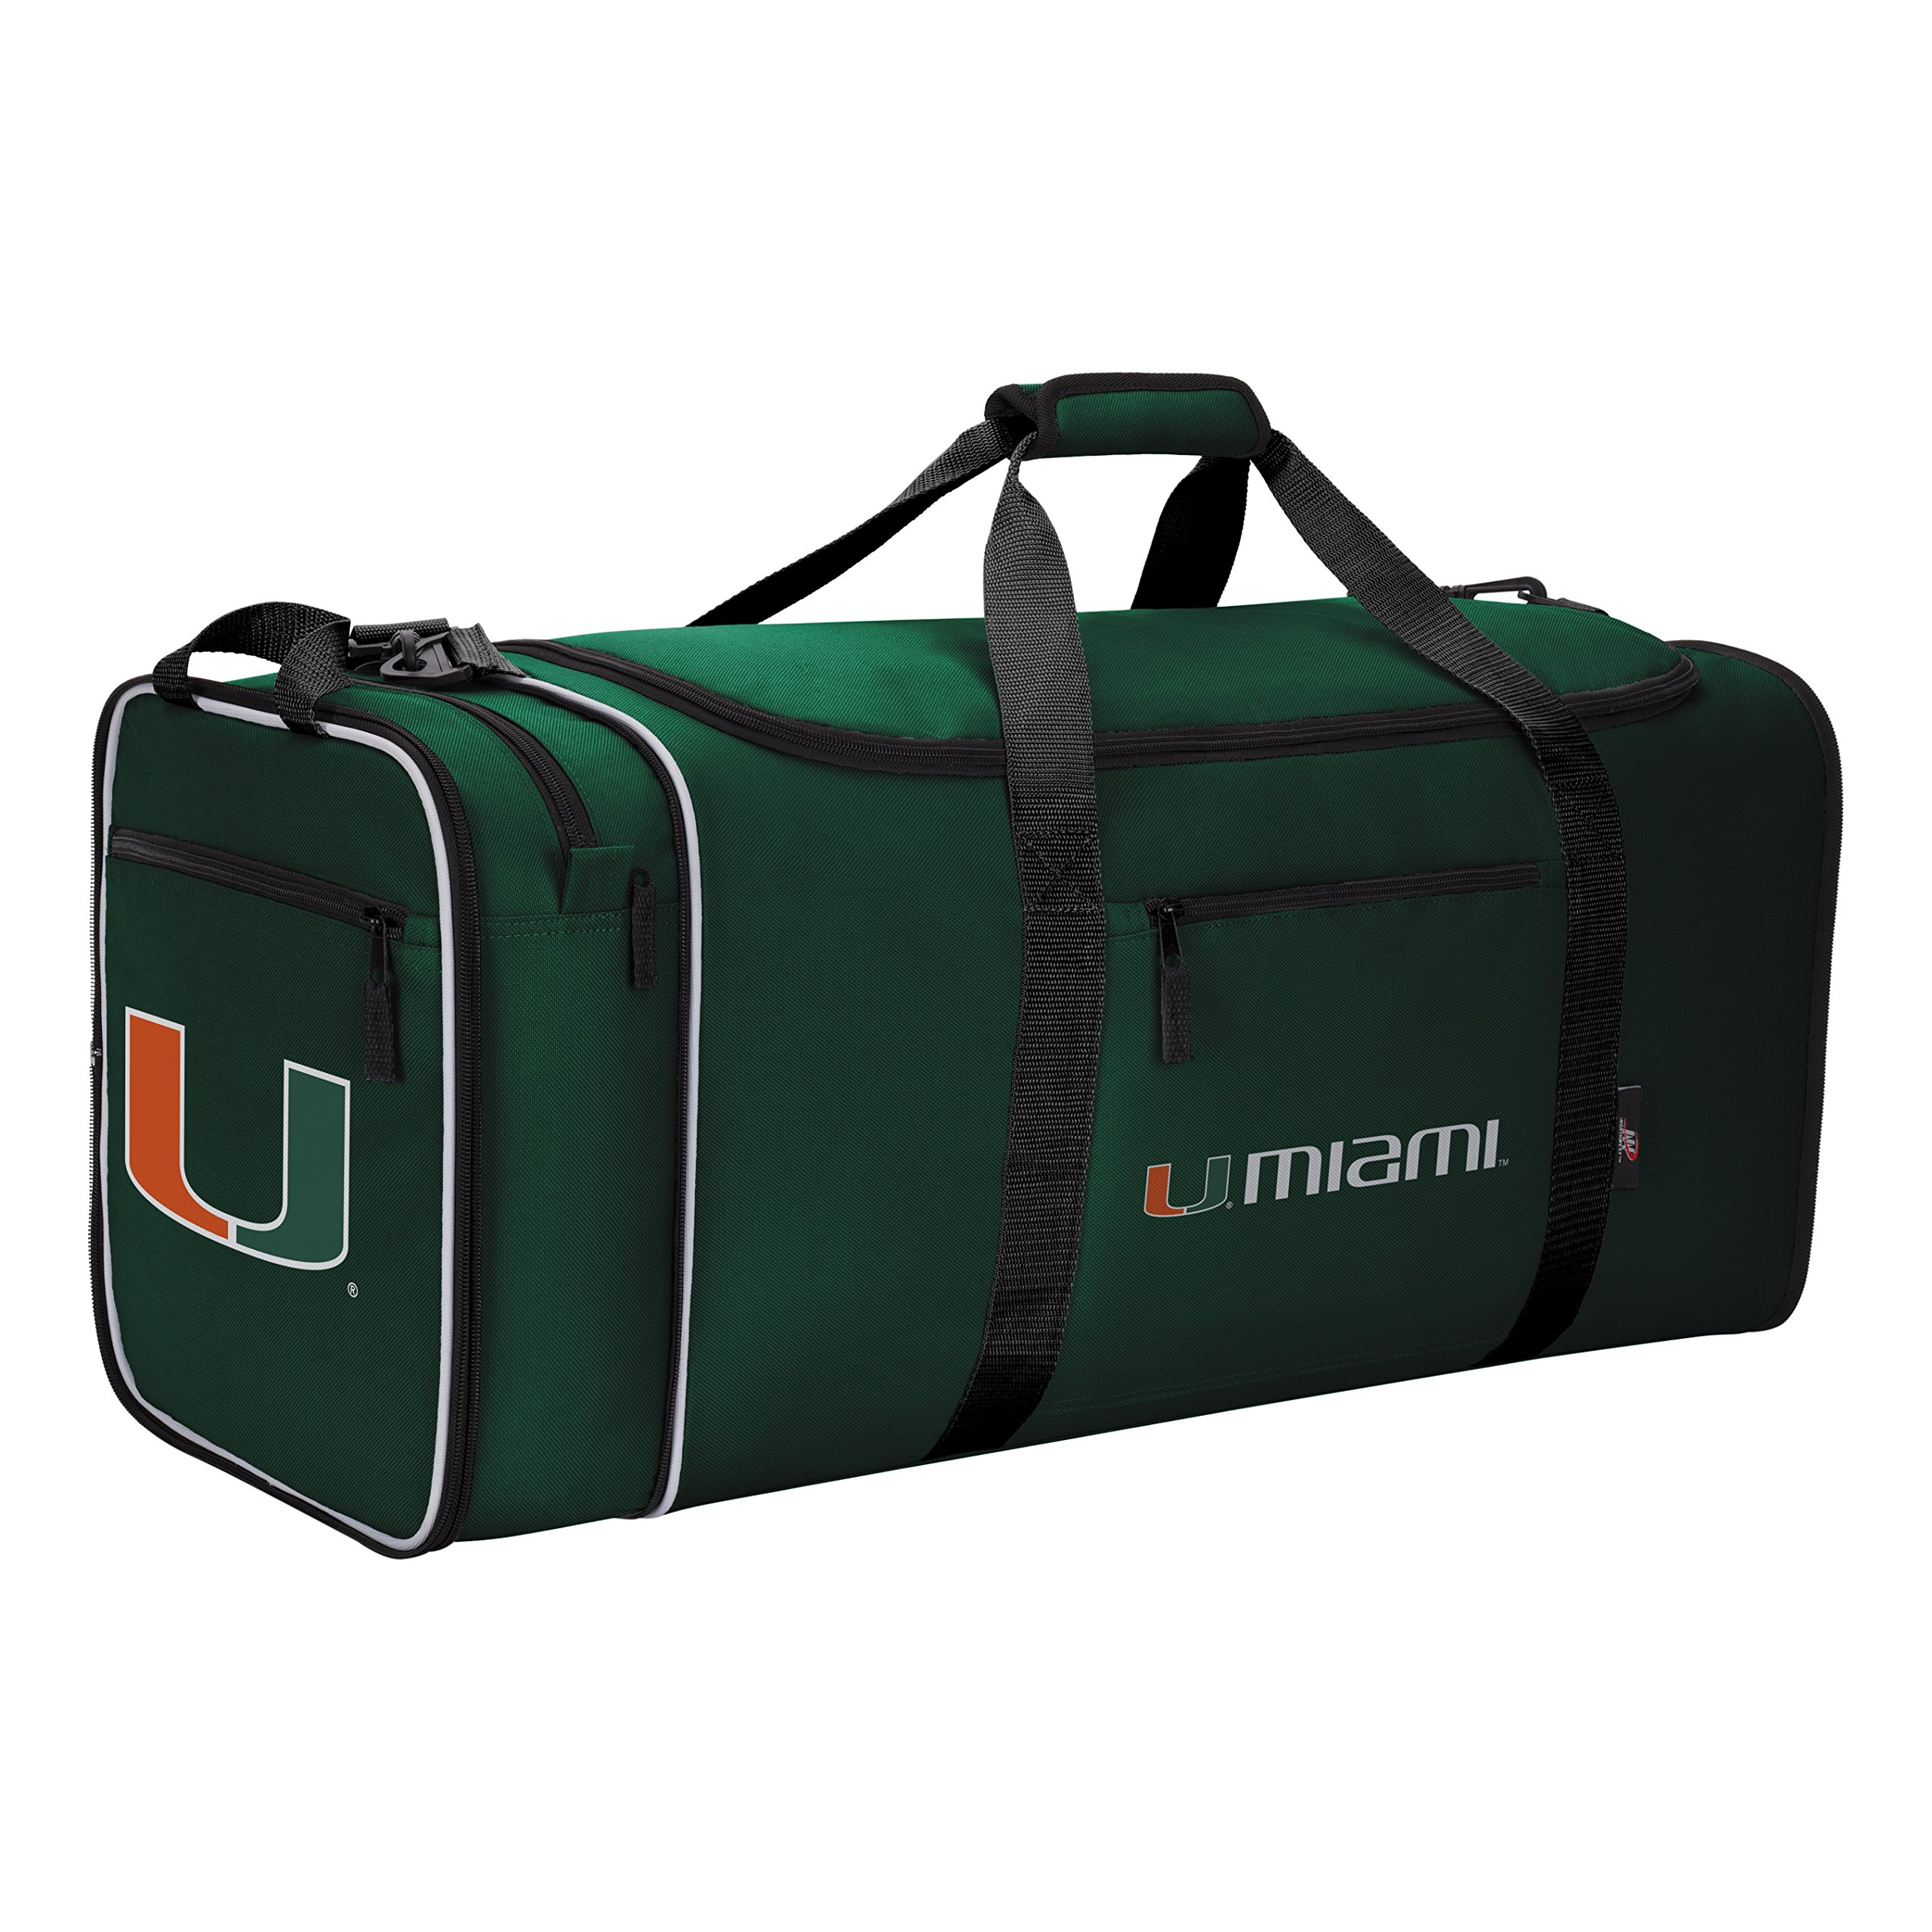 Officially Licensed NCAA Miami Hurricanes Steal Duffel Bag by The Northwest Company (Image #3)